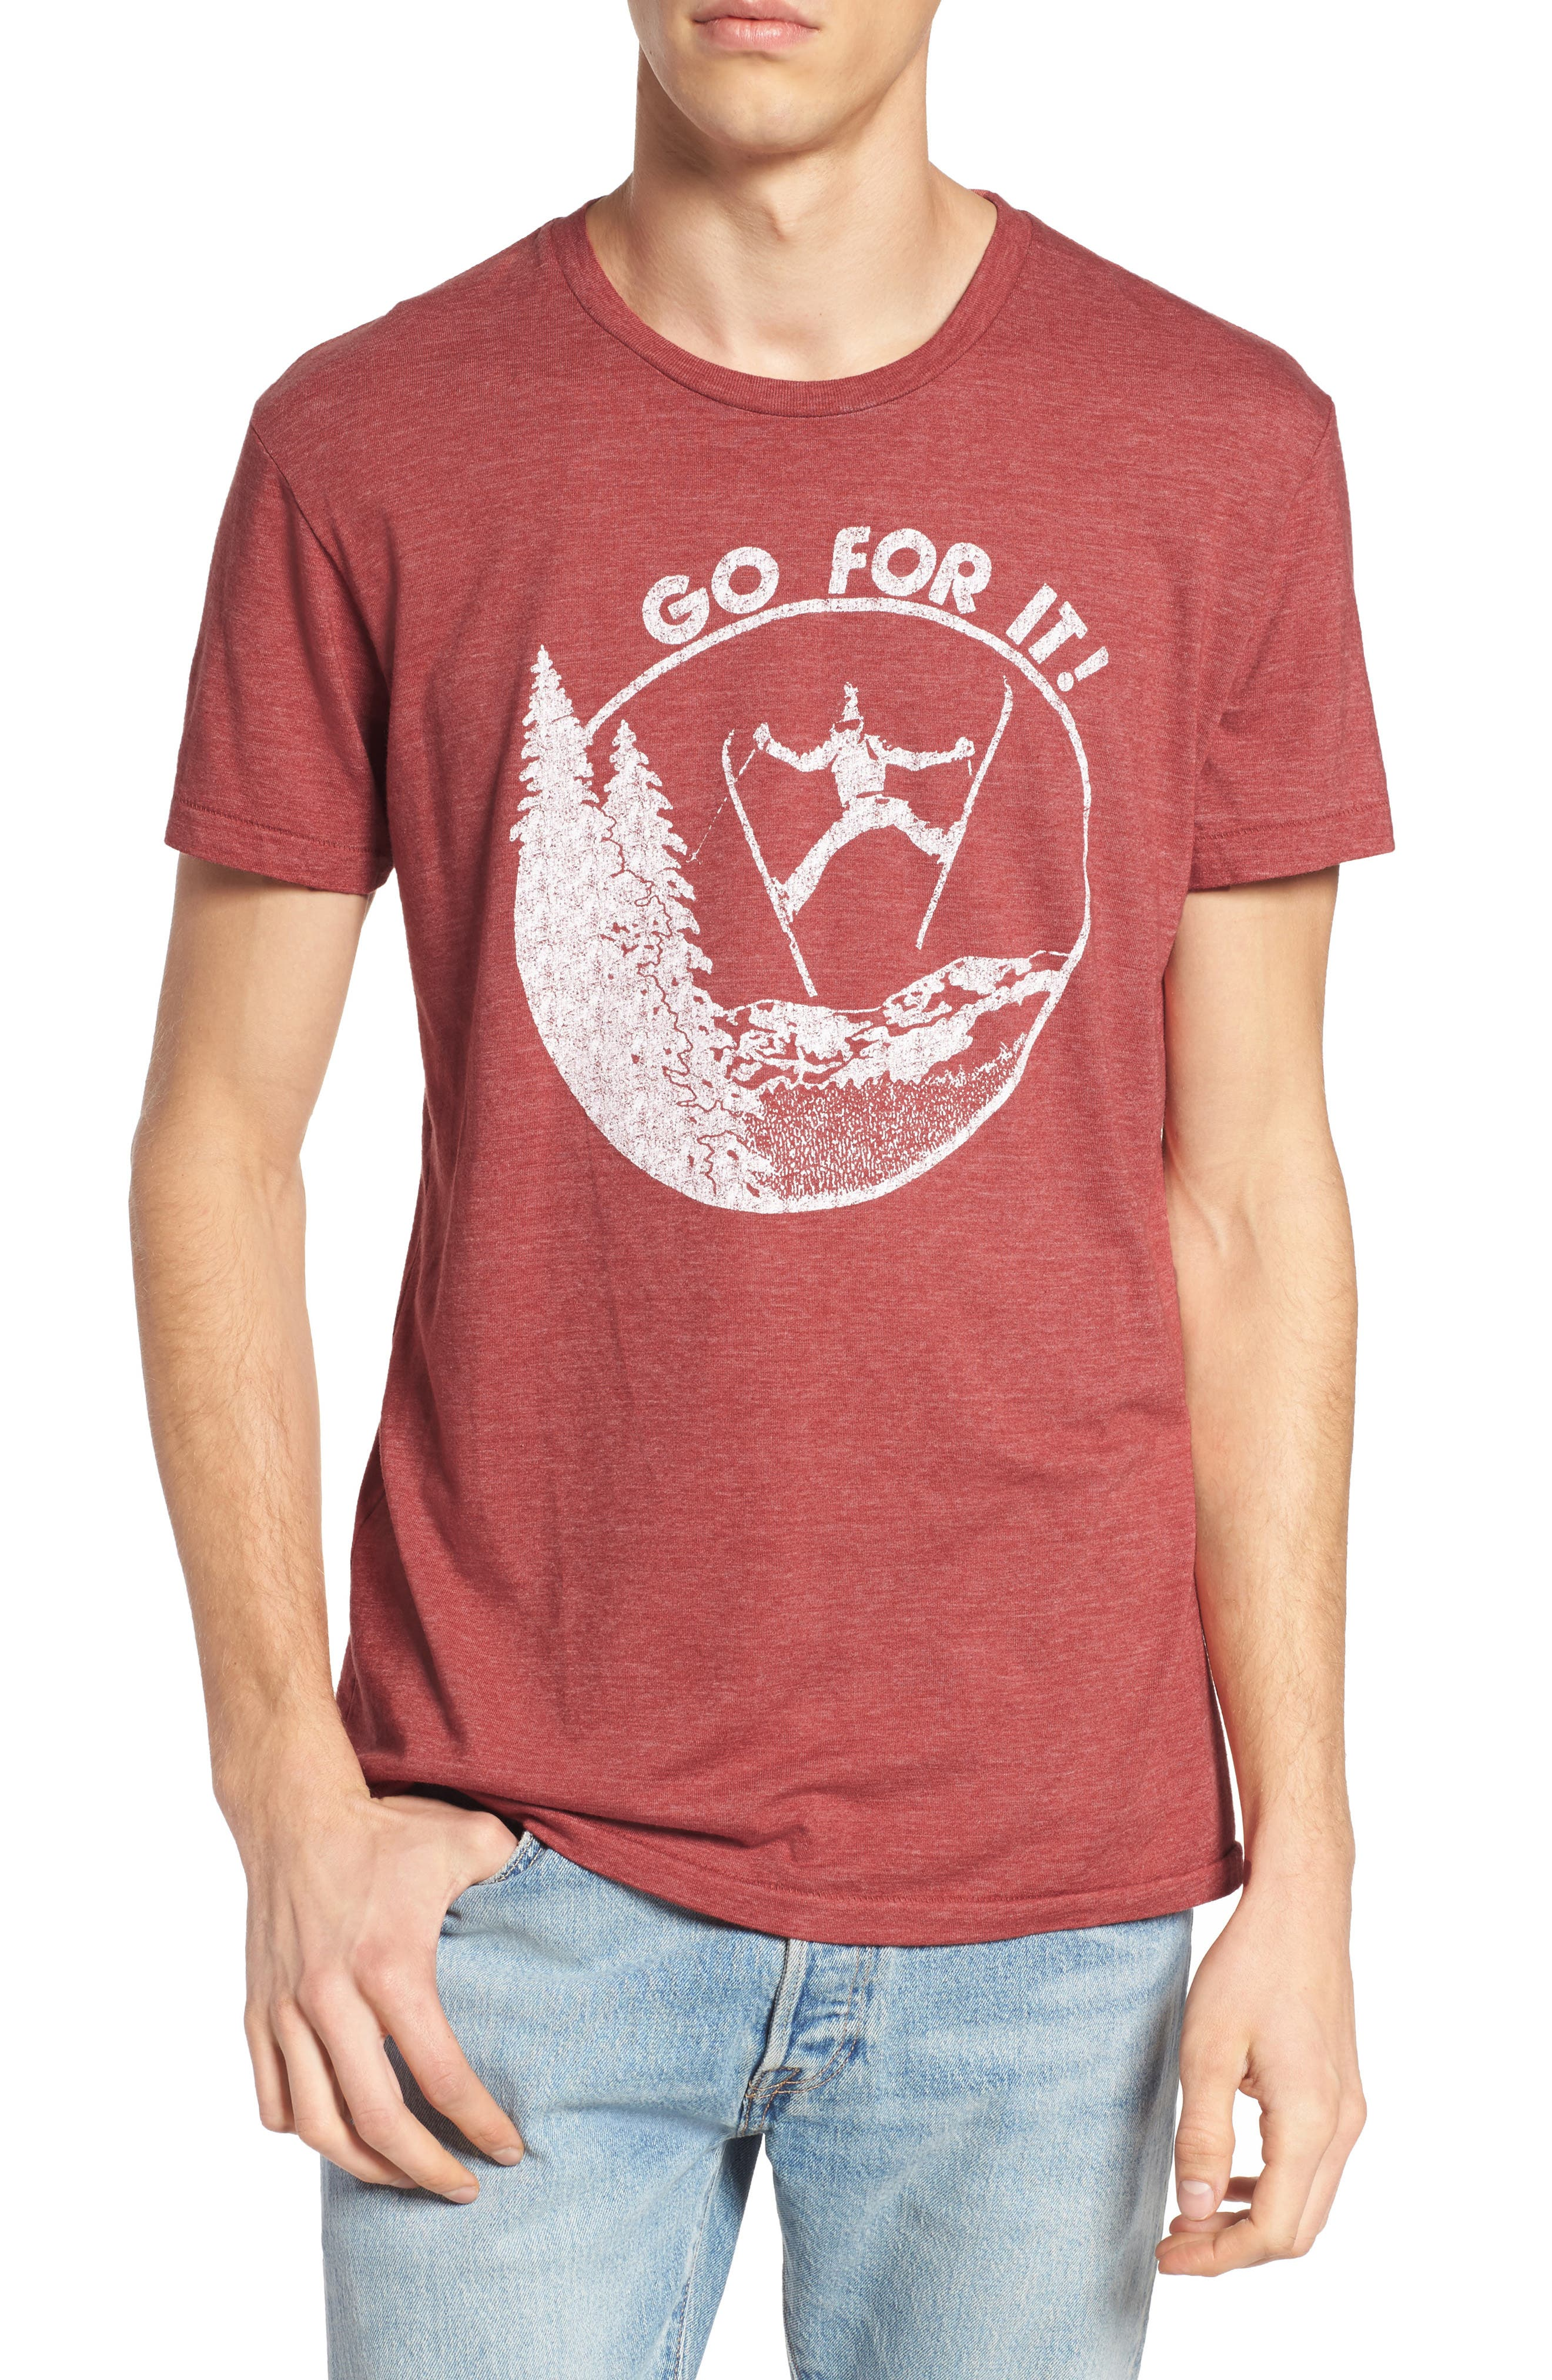 Main Image - Sol Angeles Go for It Graphic T-Shirt